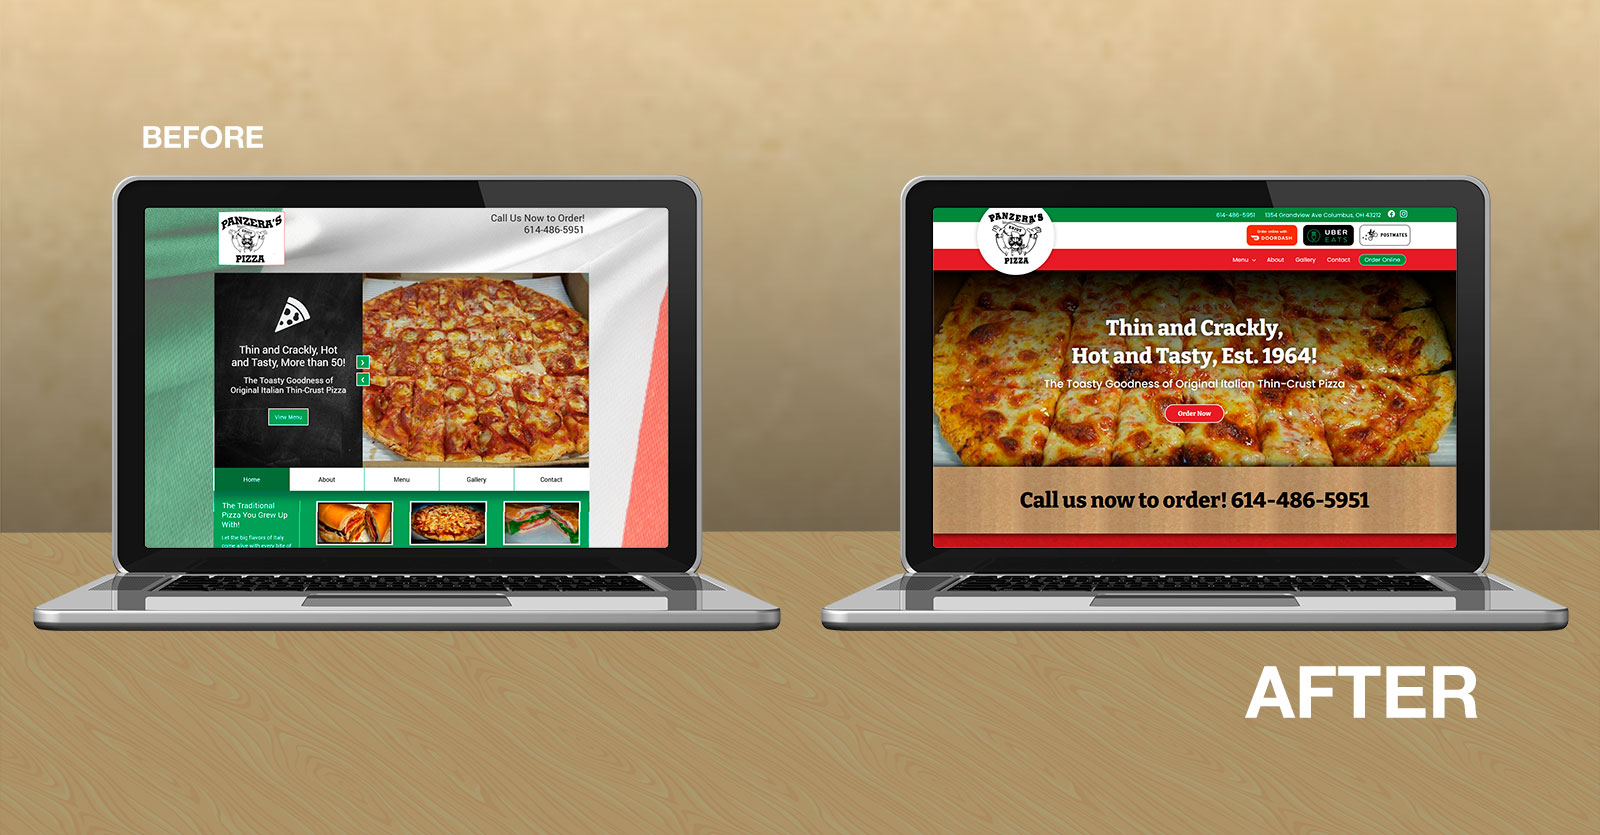 Panzera's Pizza Website Design before and after images on laptops